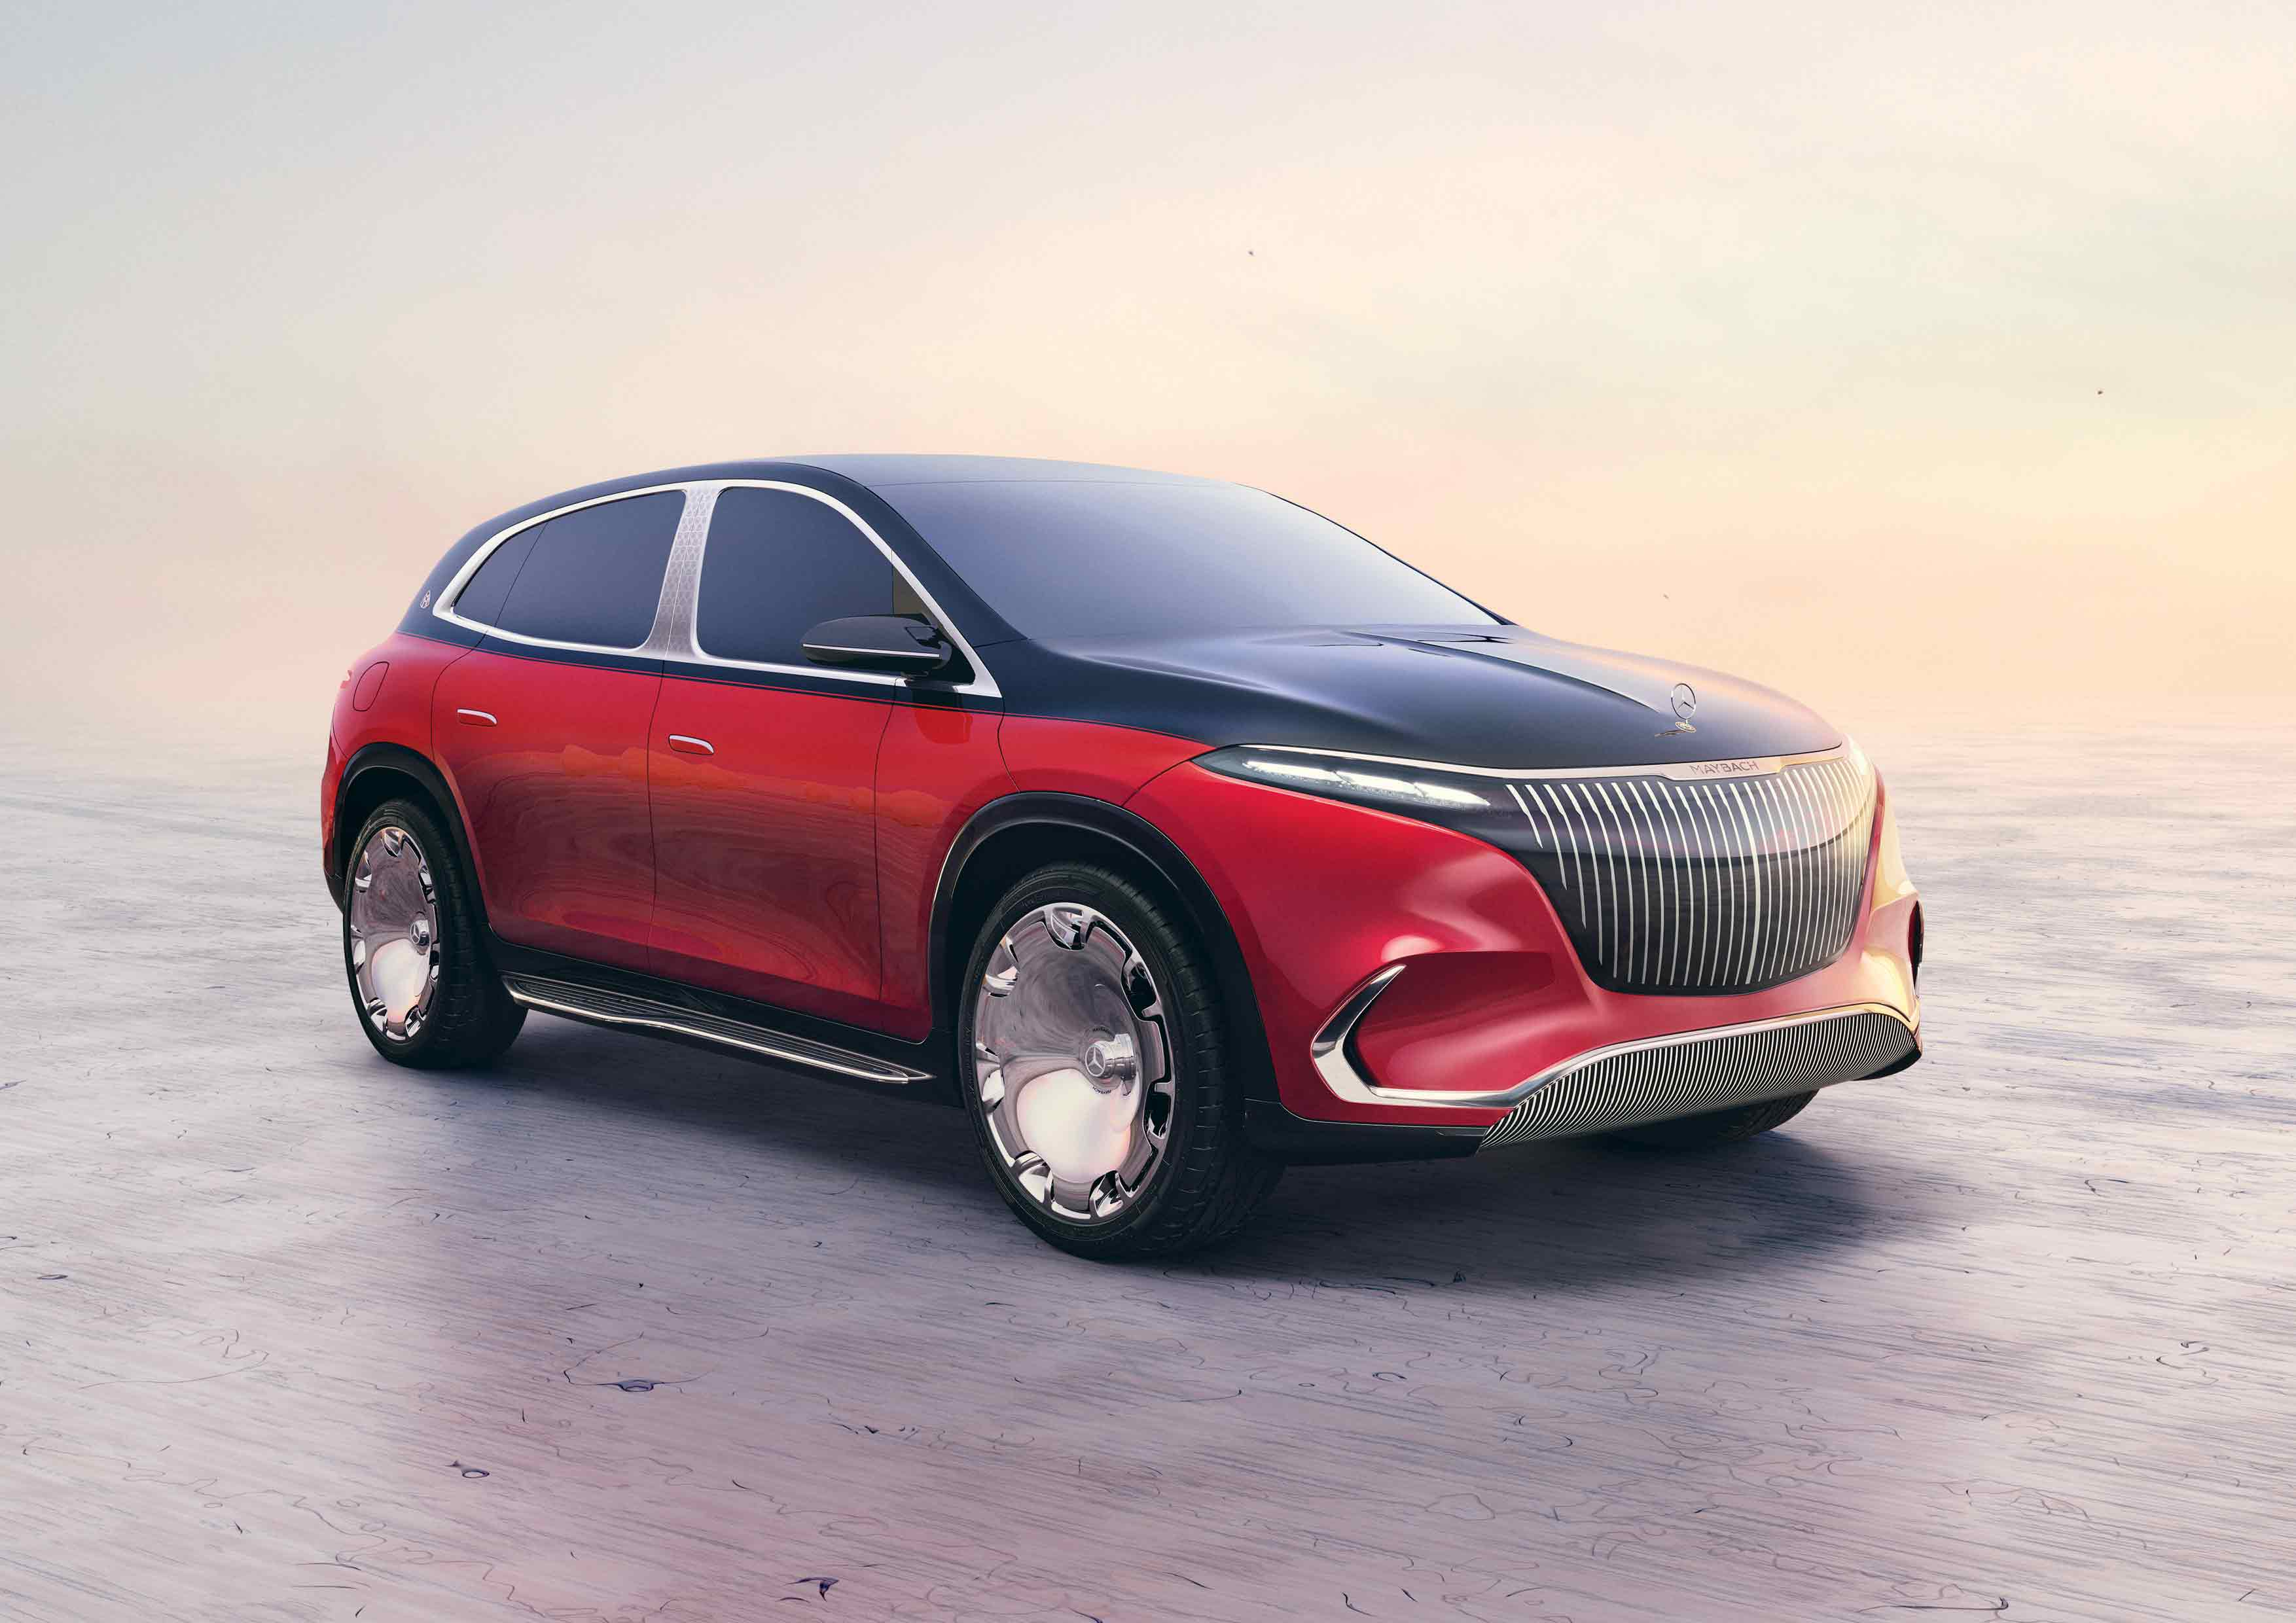 Premiere of the Concept Mercedes-Maybach EQS